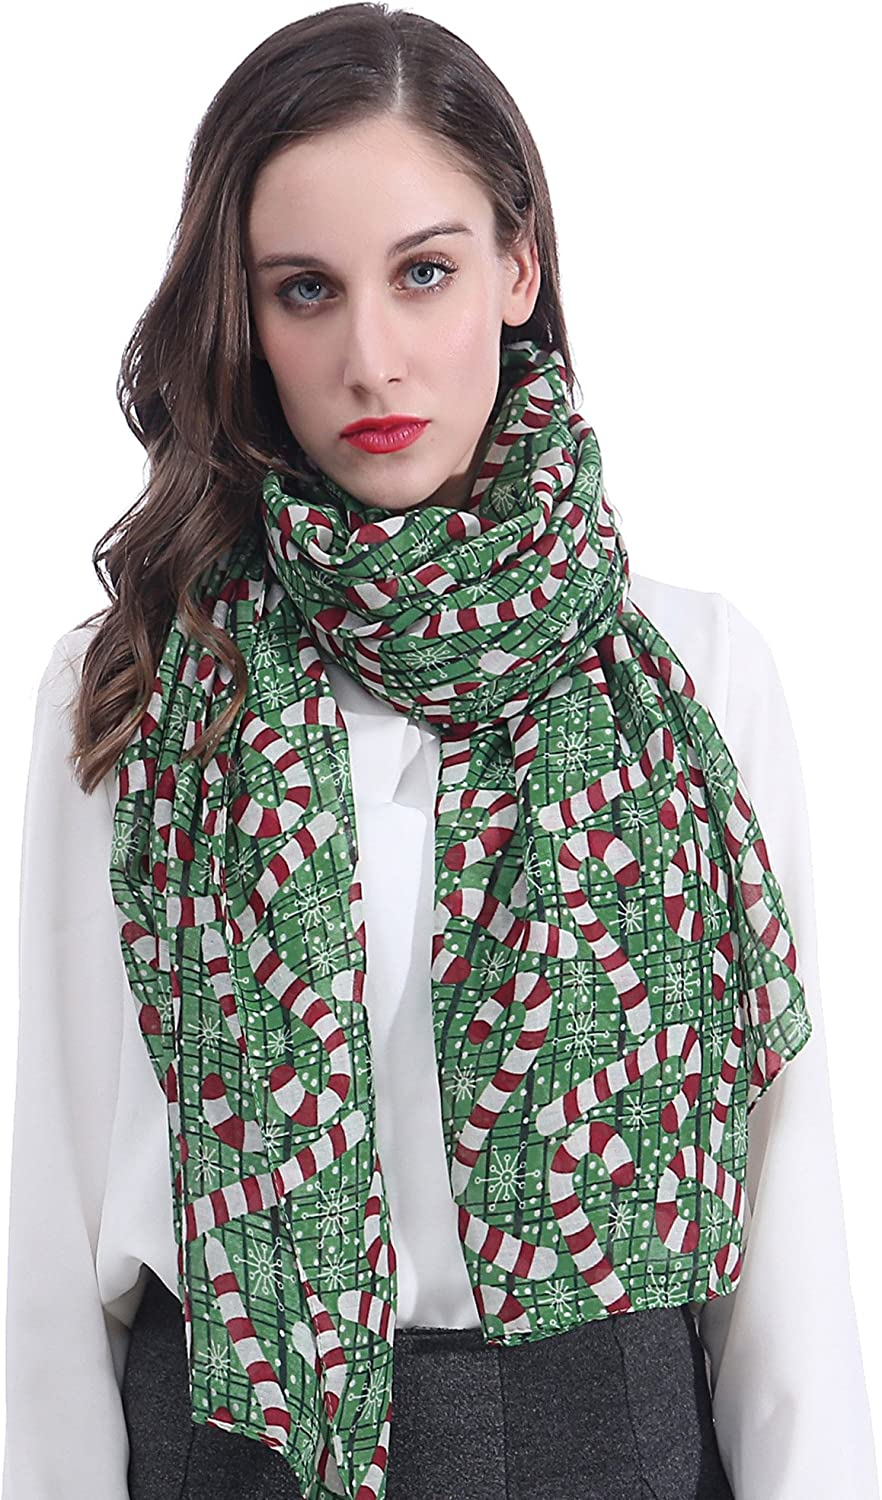 Lina & Lily Candy Cane Print Women's Large Christmas Scarf